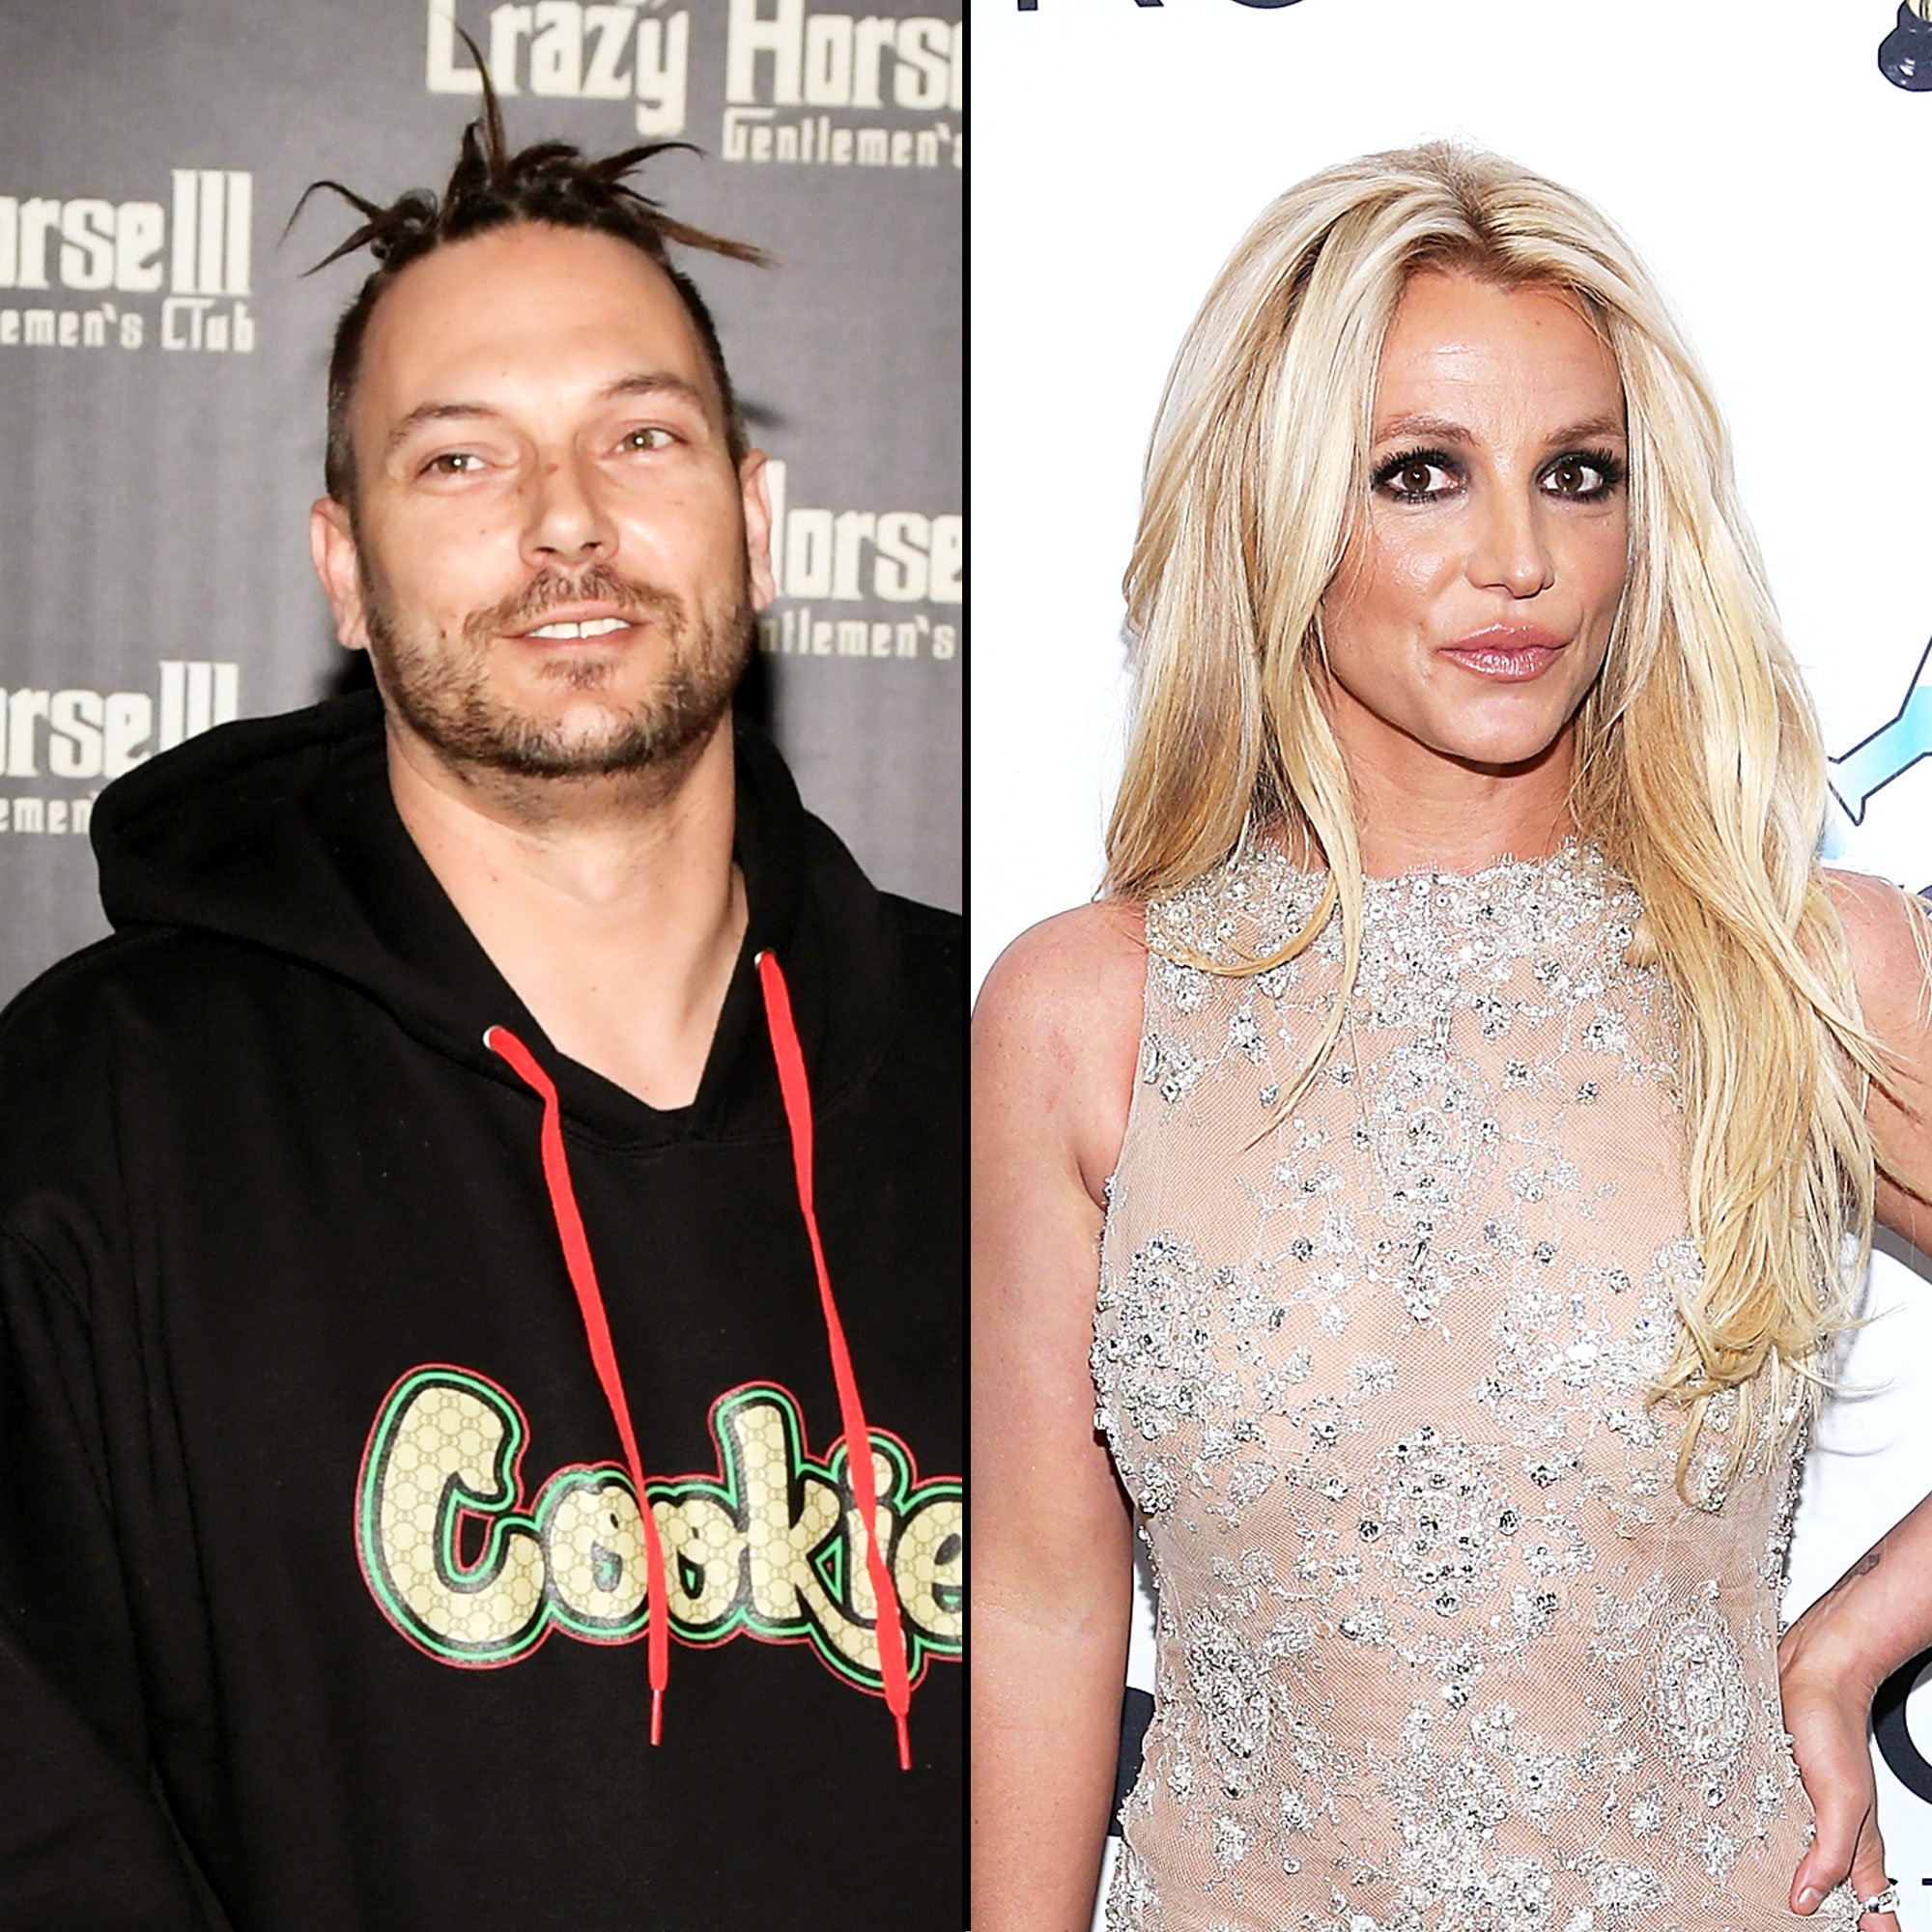 Kevin Federline 'Commends' Ex-Wife Britney Spears for Seeking Mental Health Treatment